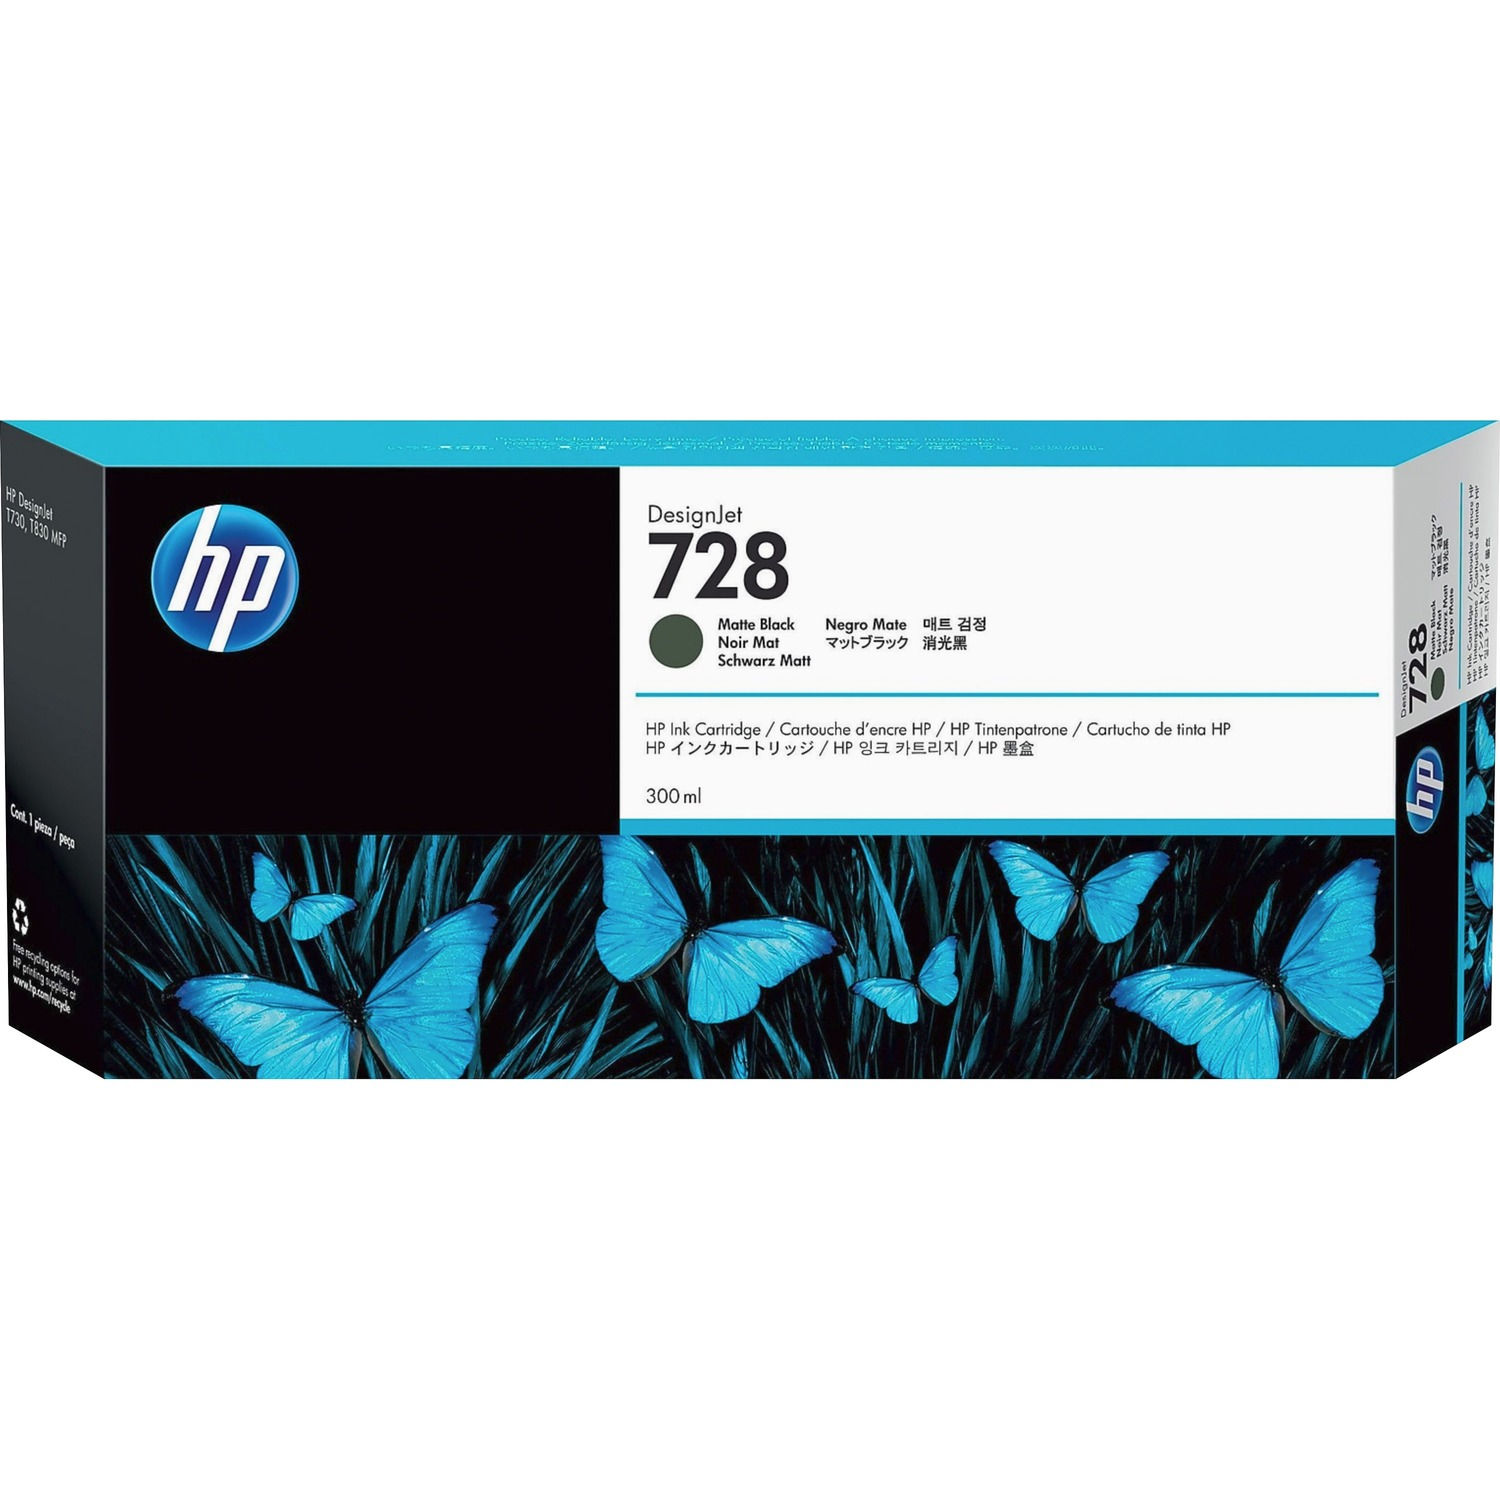 HP 728 Original Ink Cartridge - Matte Black - Inkjet